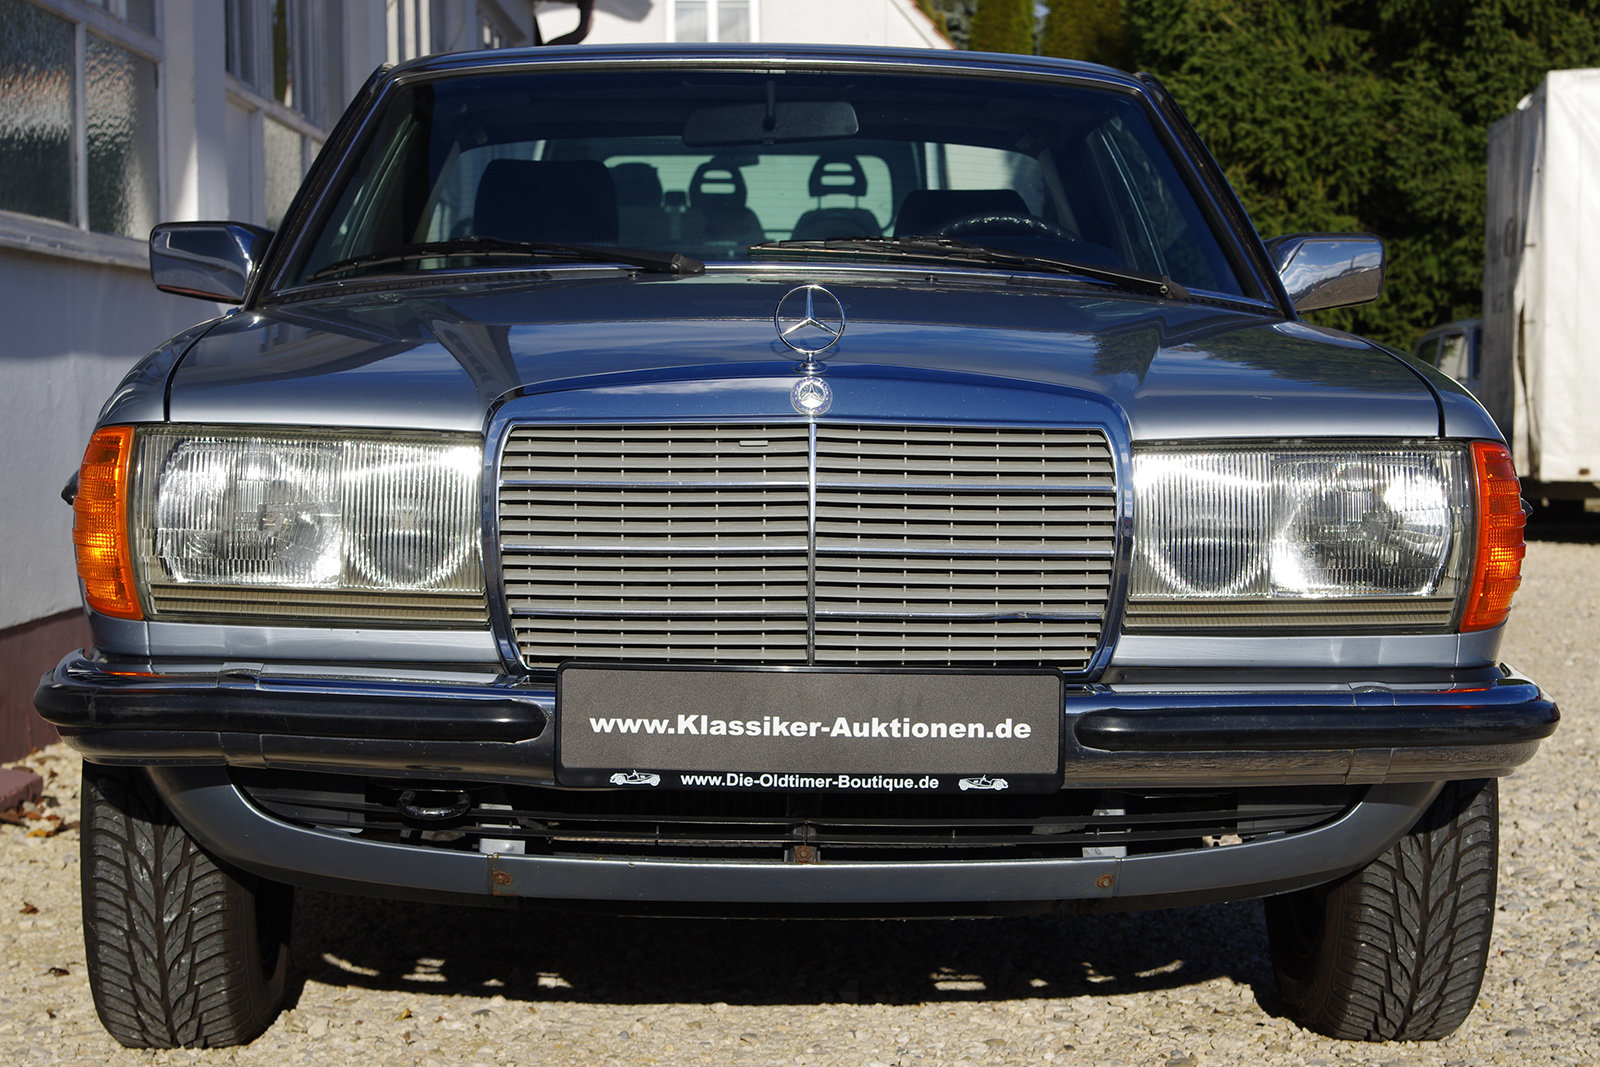 1983 Mercedes-Benz 230 CE - C123 - LHD - only 3 owners in 35 year SOLD (picture 2 of 6)